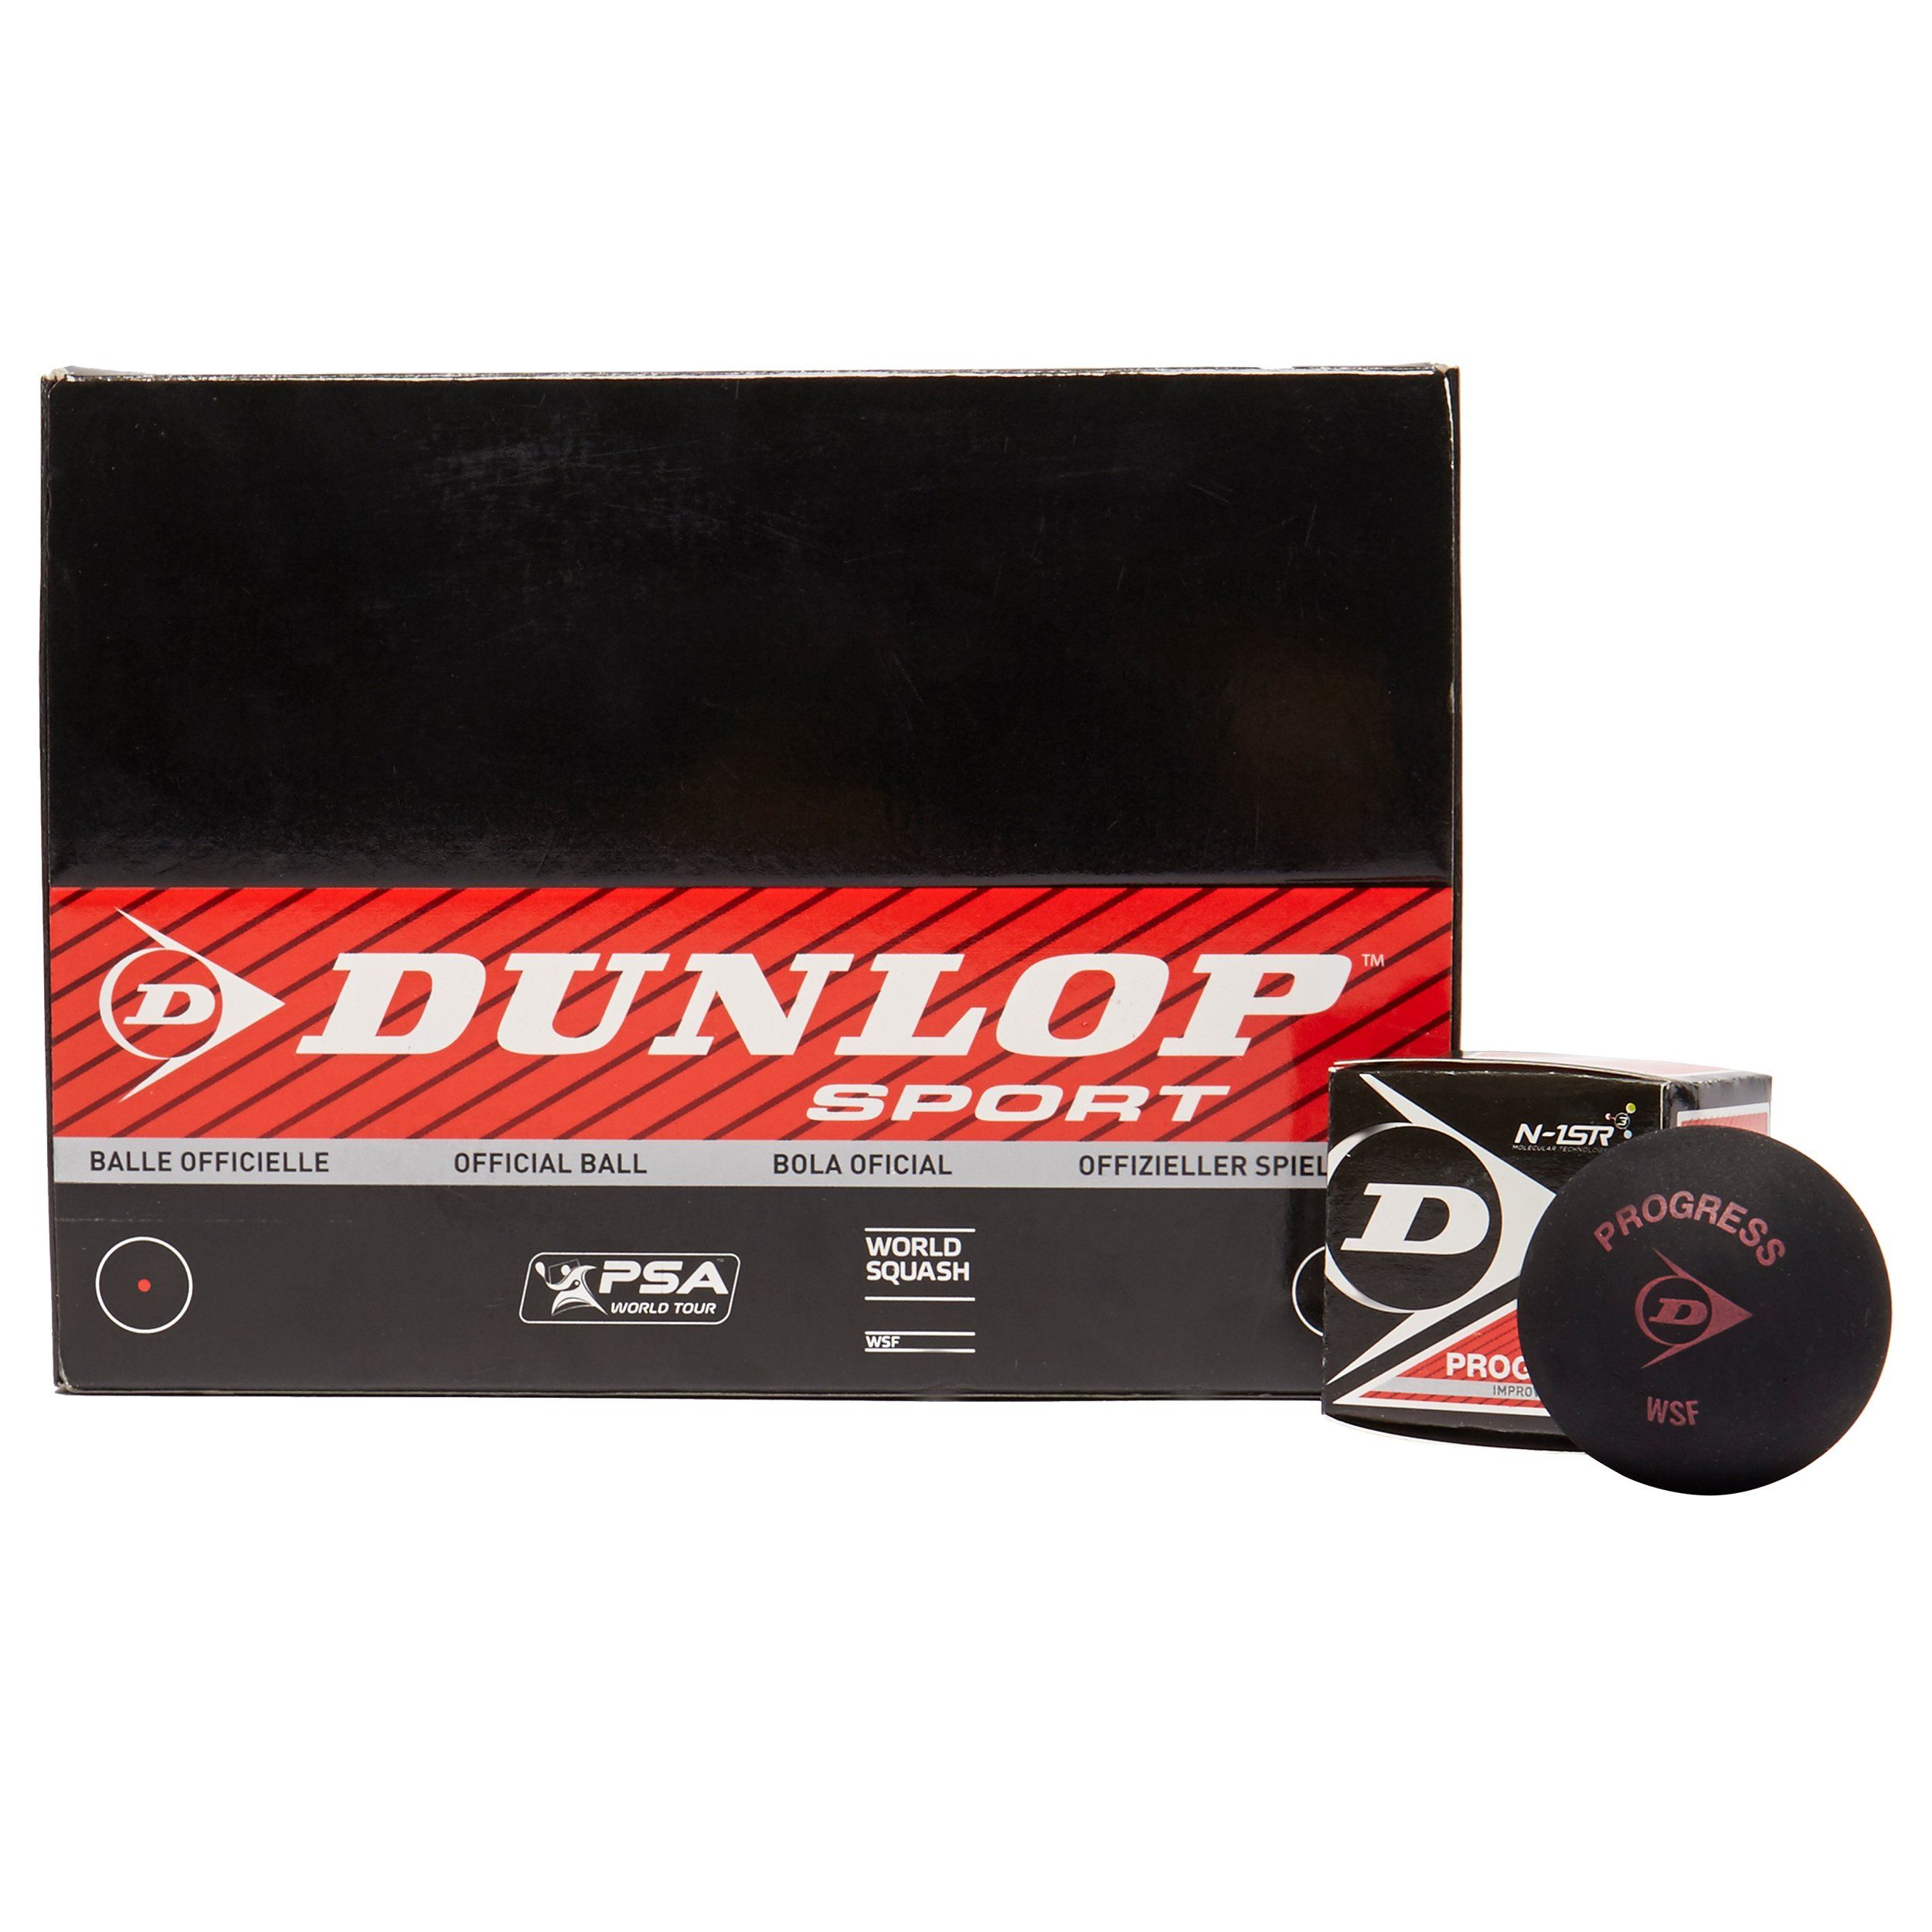 Dunlop Progress Squash Balls (12 Pack)